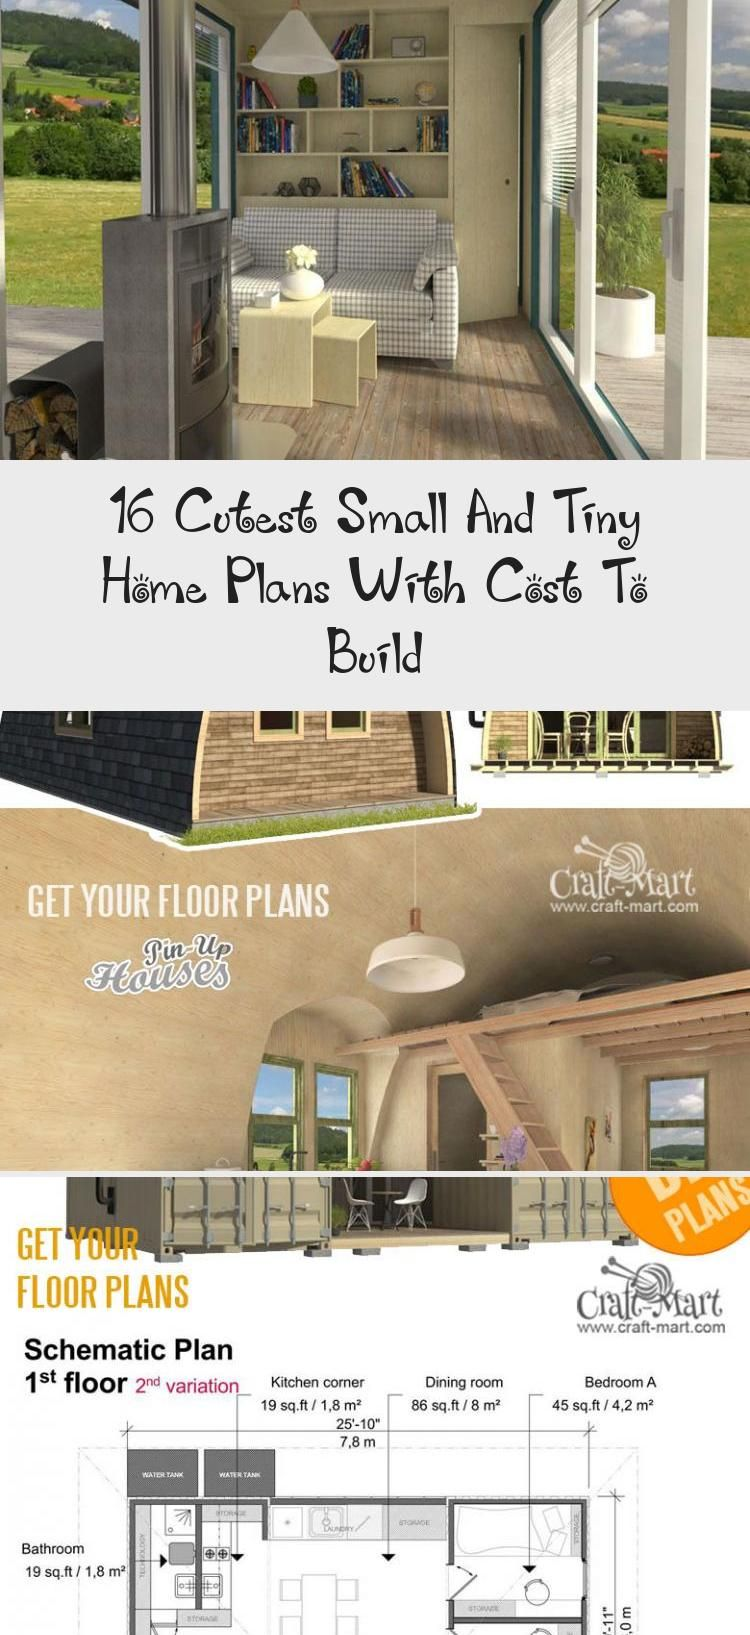 Small And Tiny Home Plans With Cost To Build Small Bungalow House Plans Mila Tinyhousemovement Tinyhousehacks In 2020 Tiny House Plans House Plans Small Bungalow